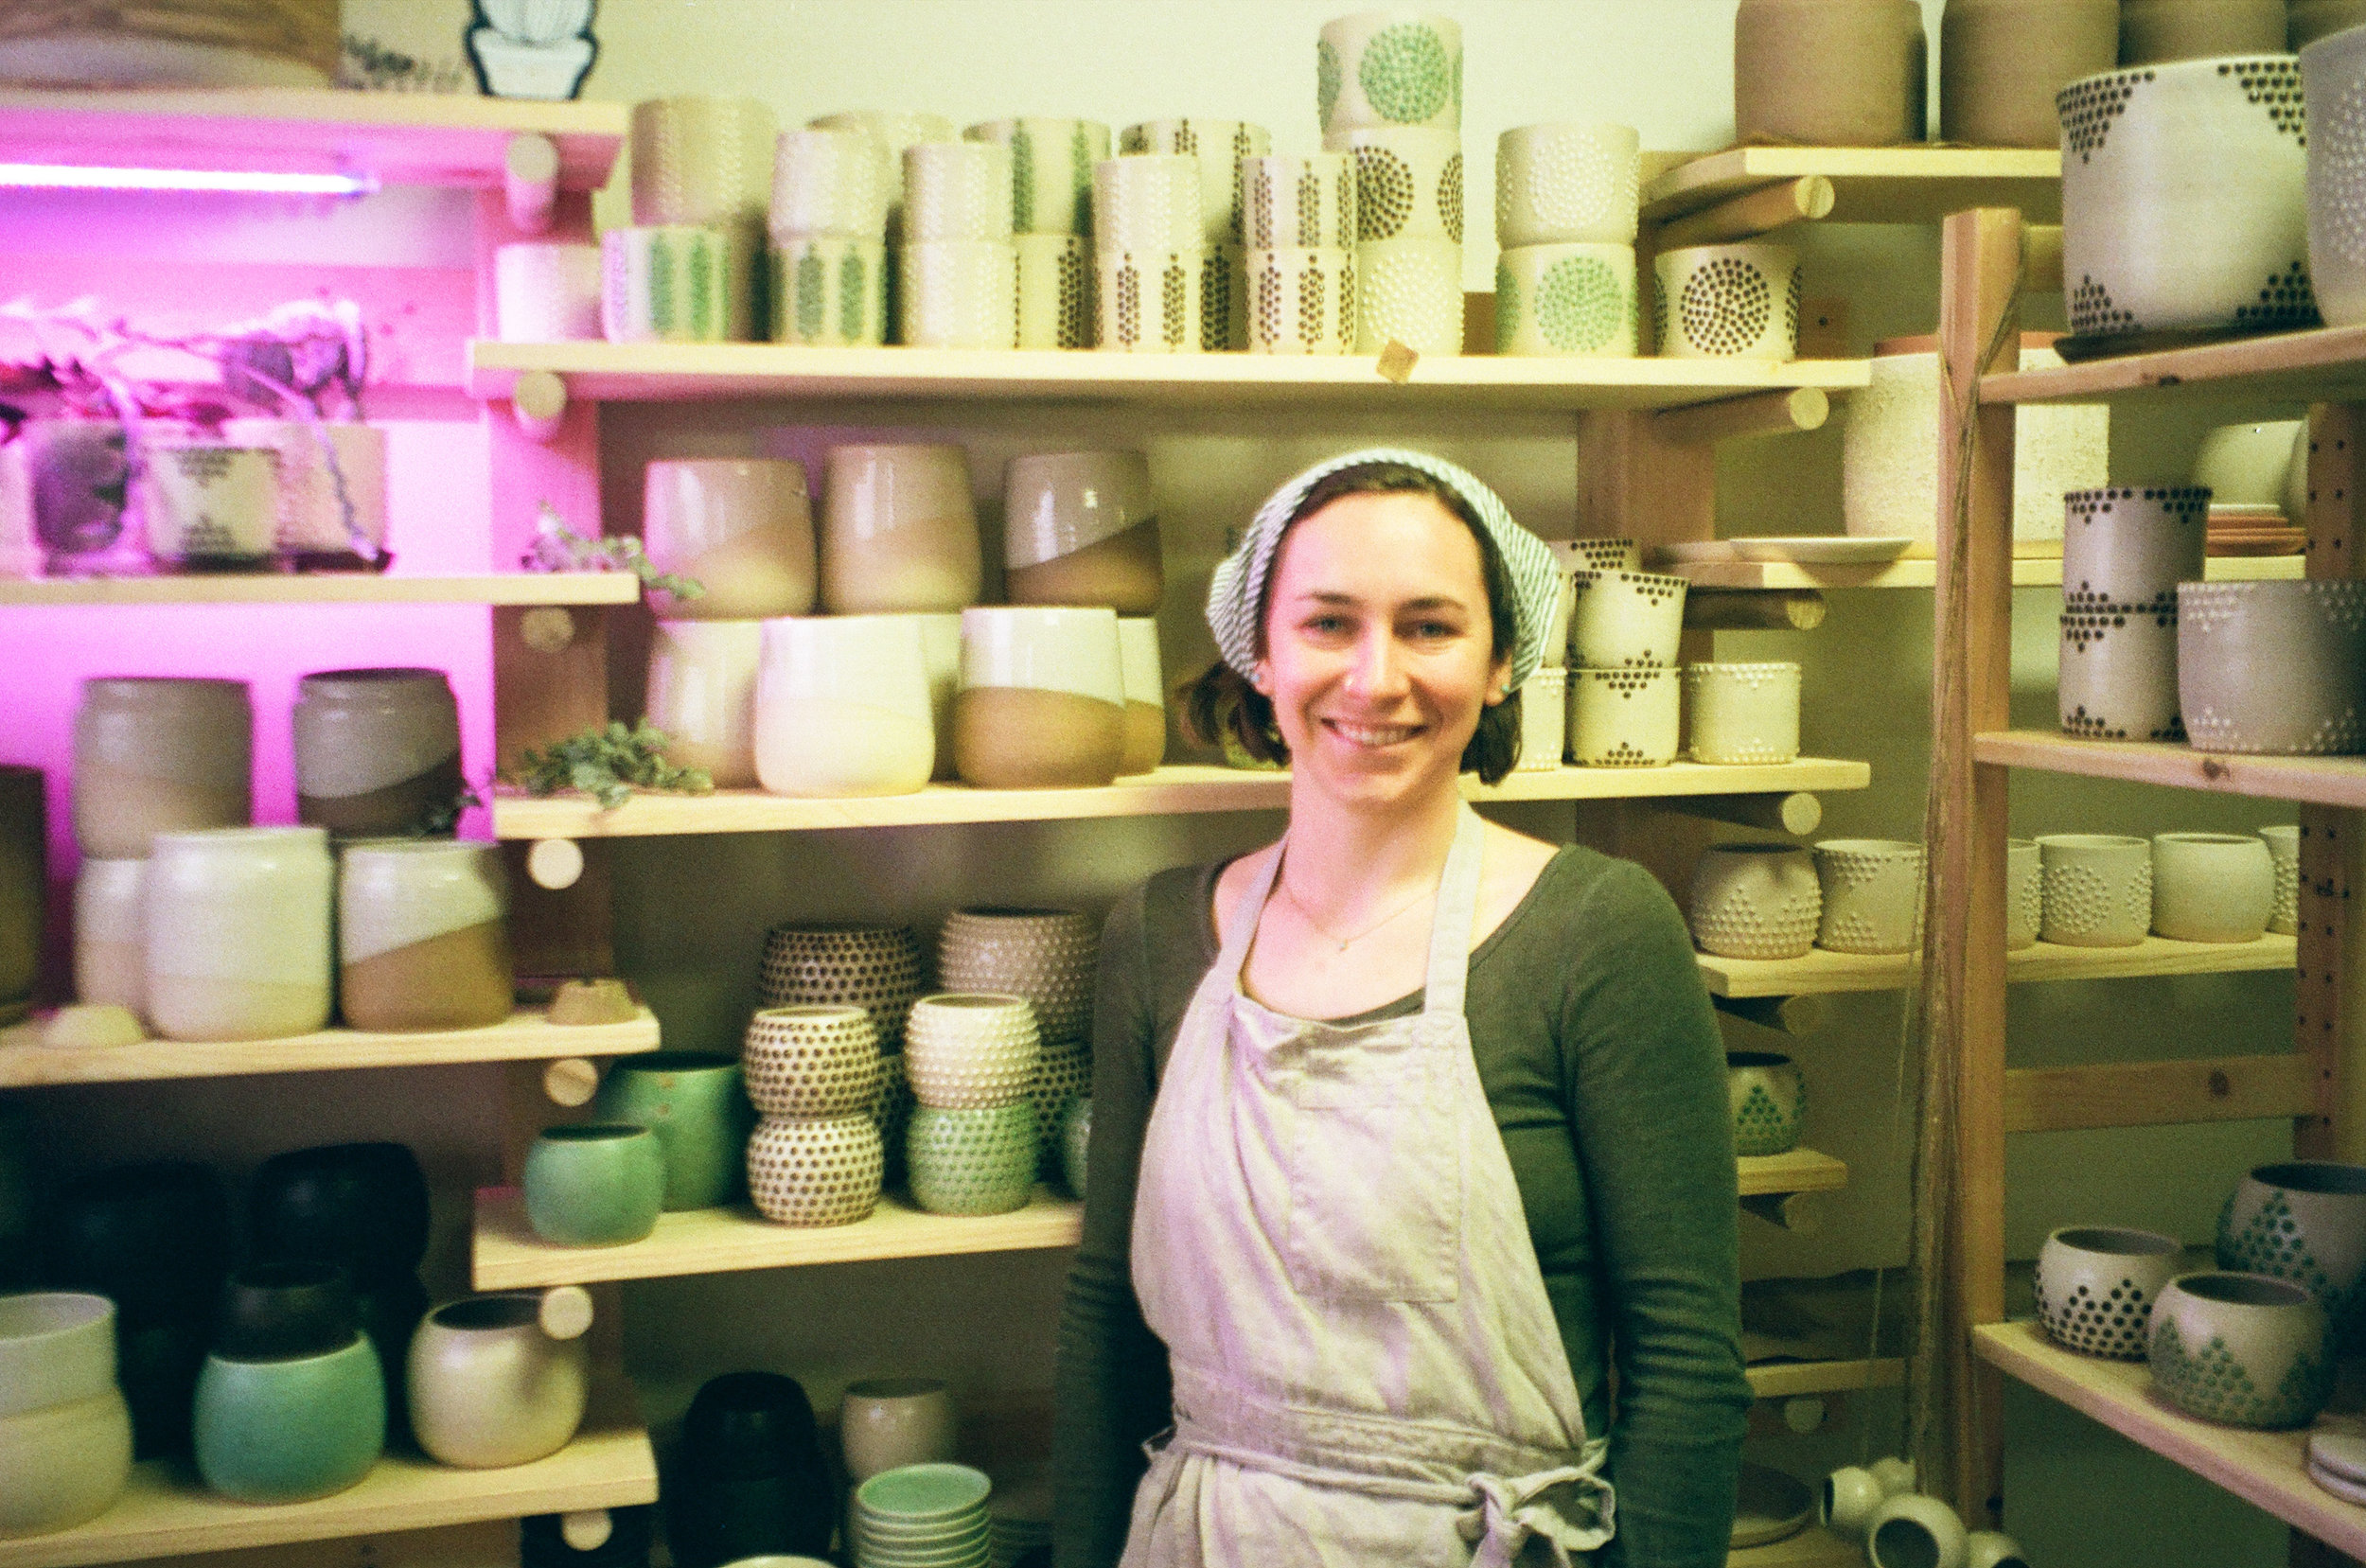 carrie-held-ceramics-1.jpg